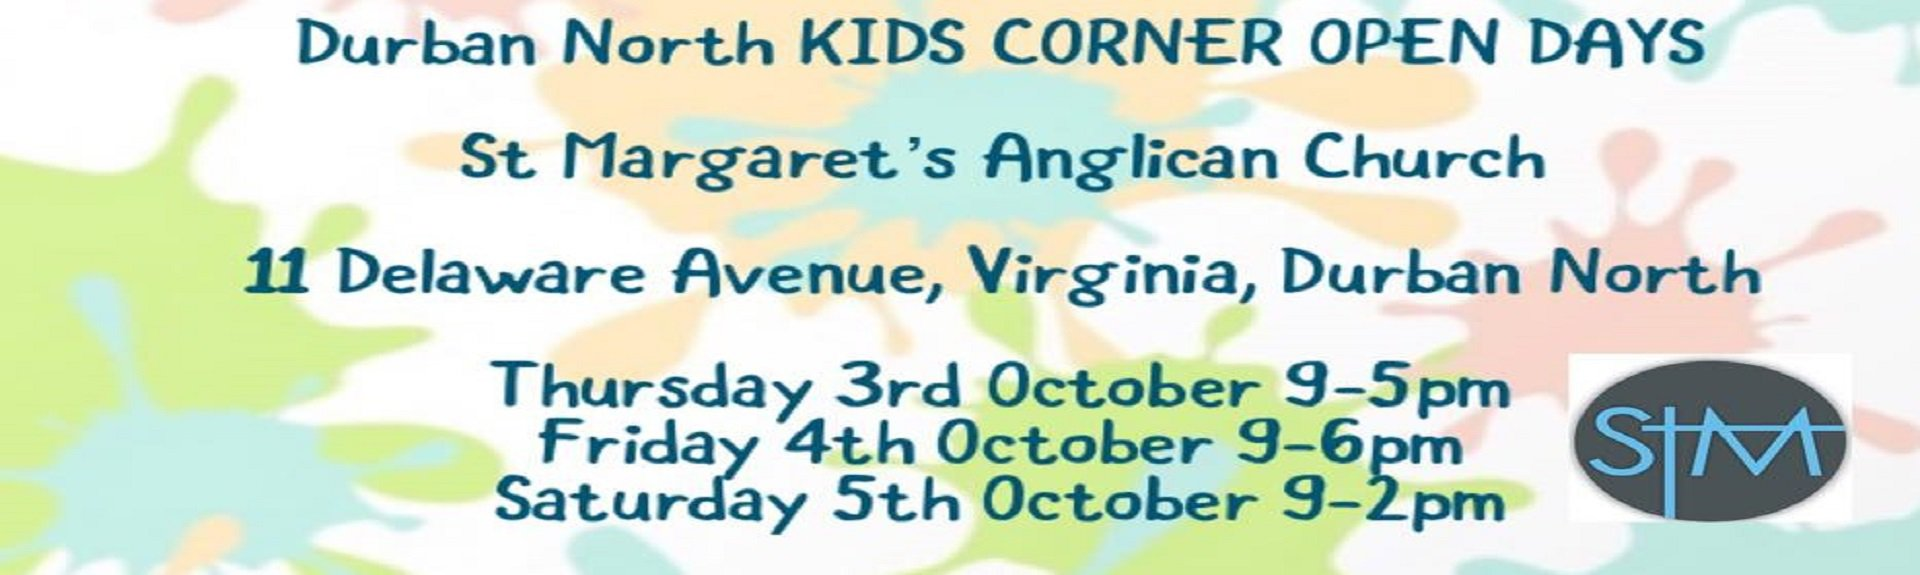 Kid's Corner Open Days Market | Durban | Things to do With Kids